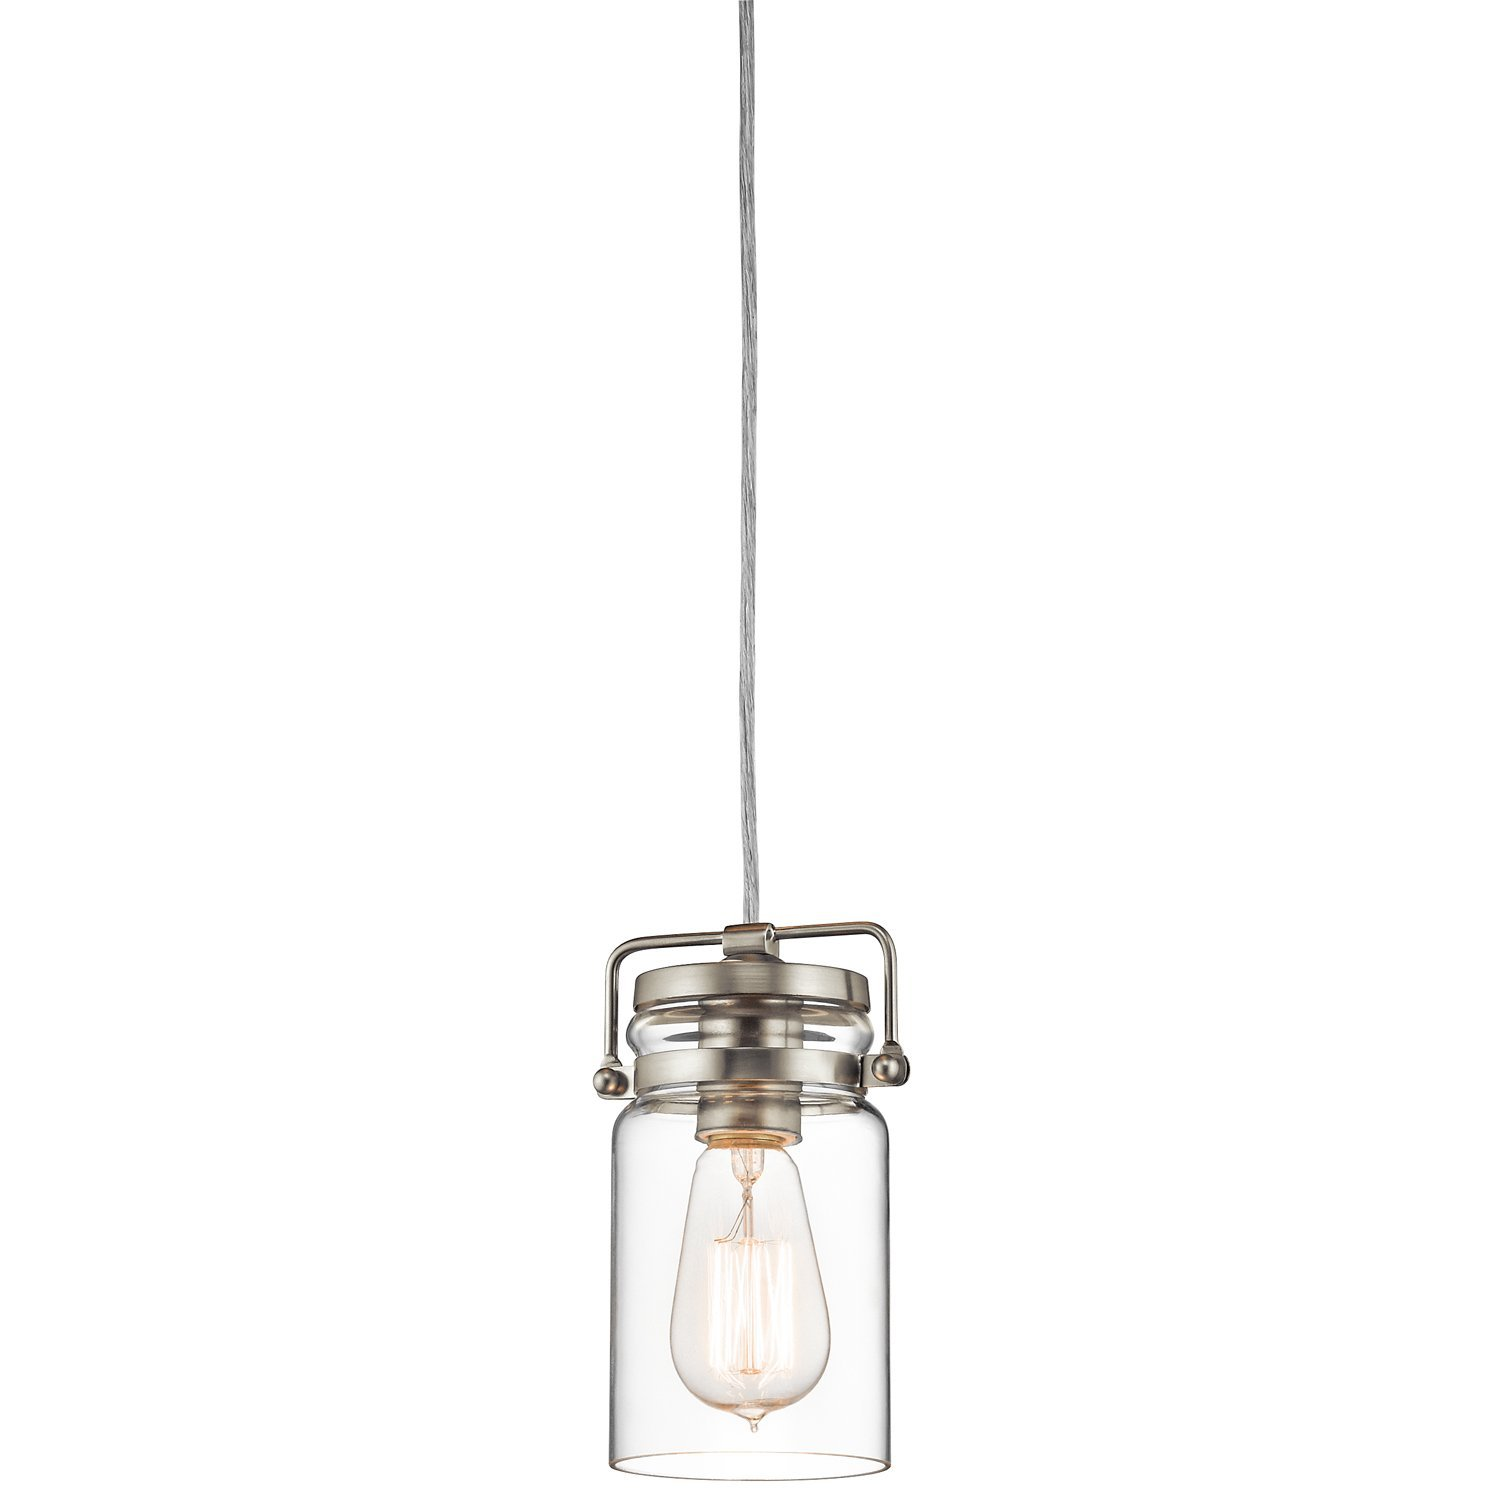 Brinley 1LT Mini-Pendant, Brushed Nickel Finish with Clear Glass Shade as seen on linenandlavender.net - http://www.linenandlavender.net/p/lighting-new-antique-one-of-kind.html